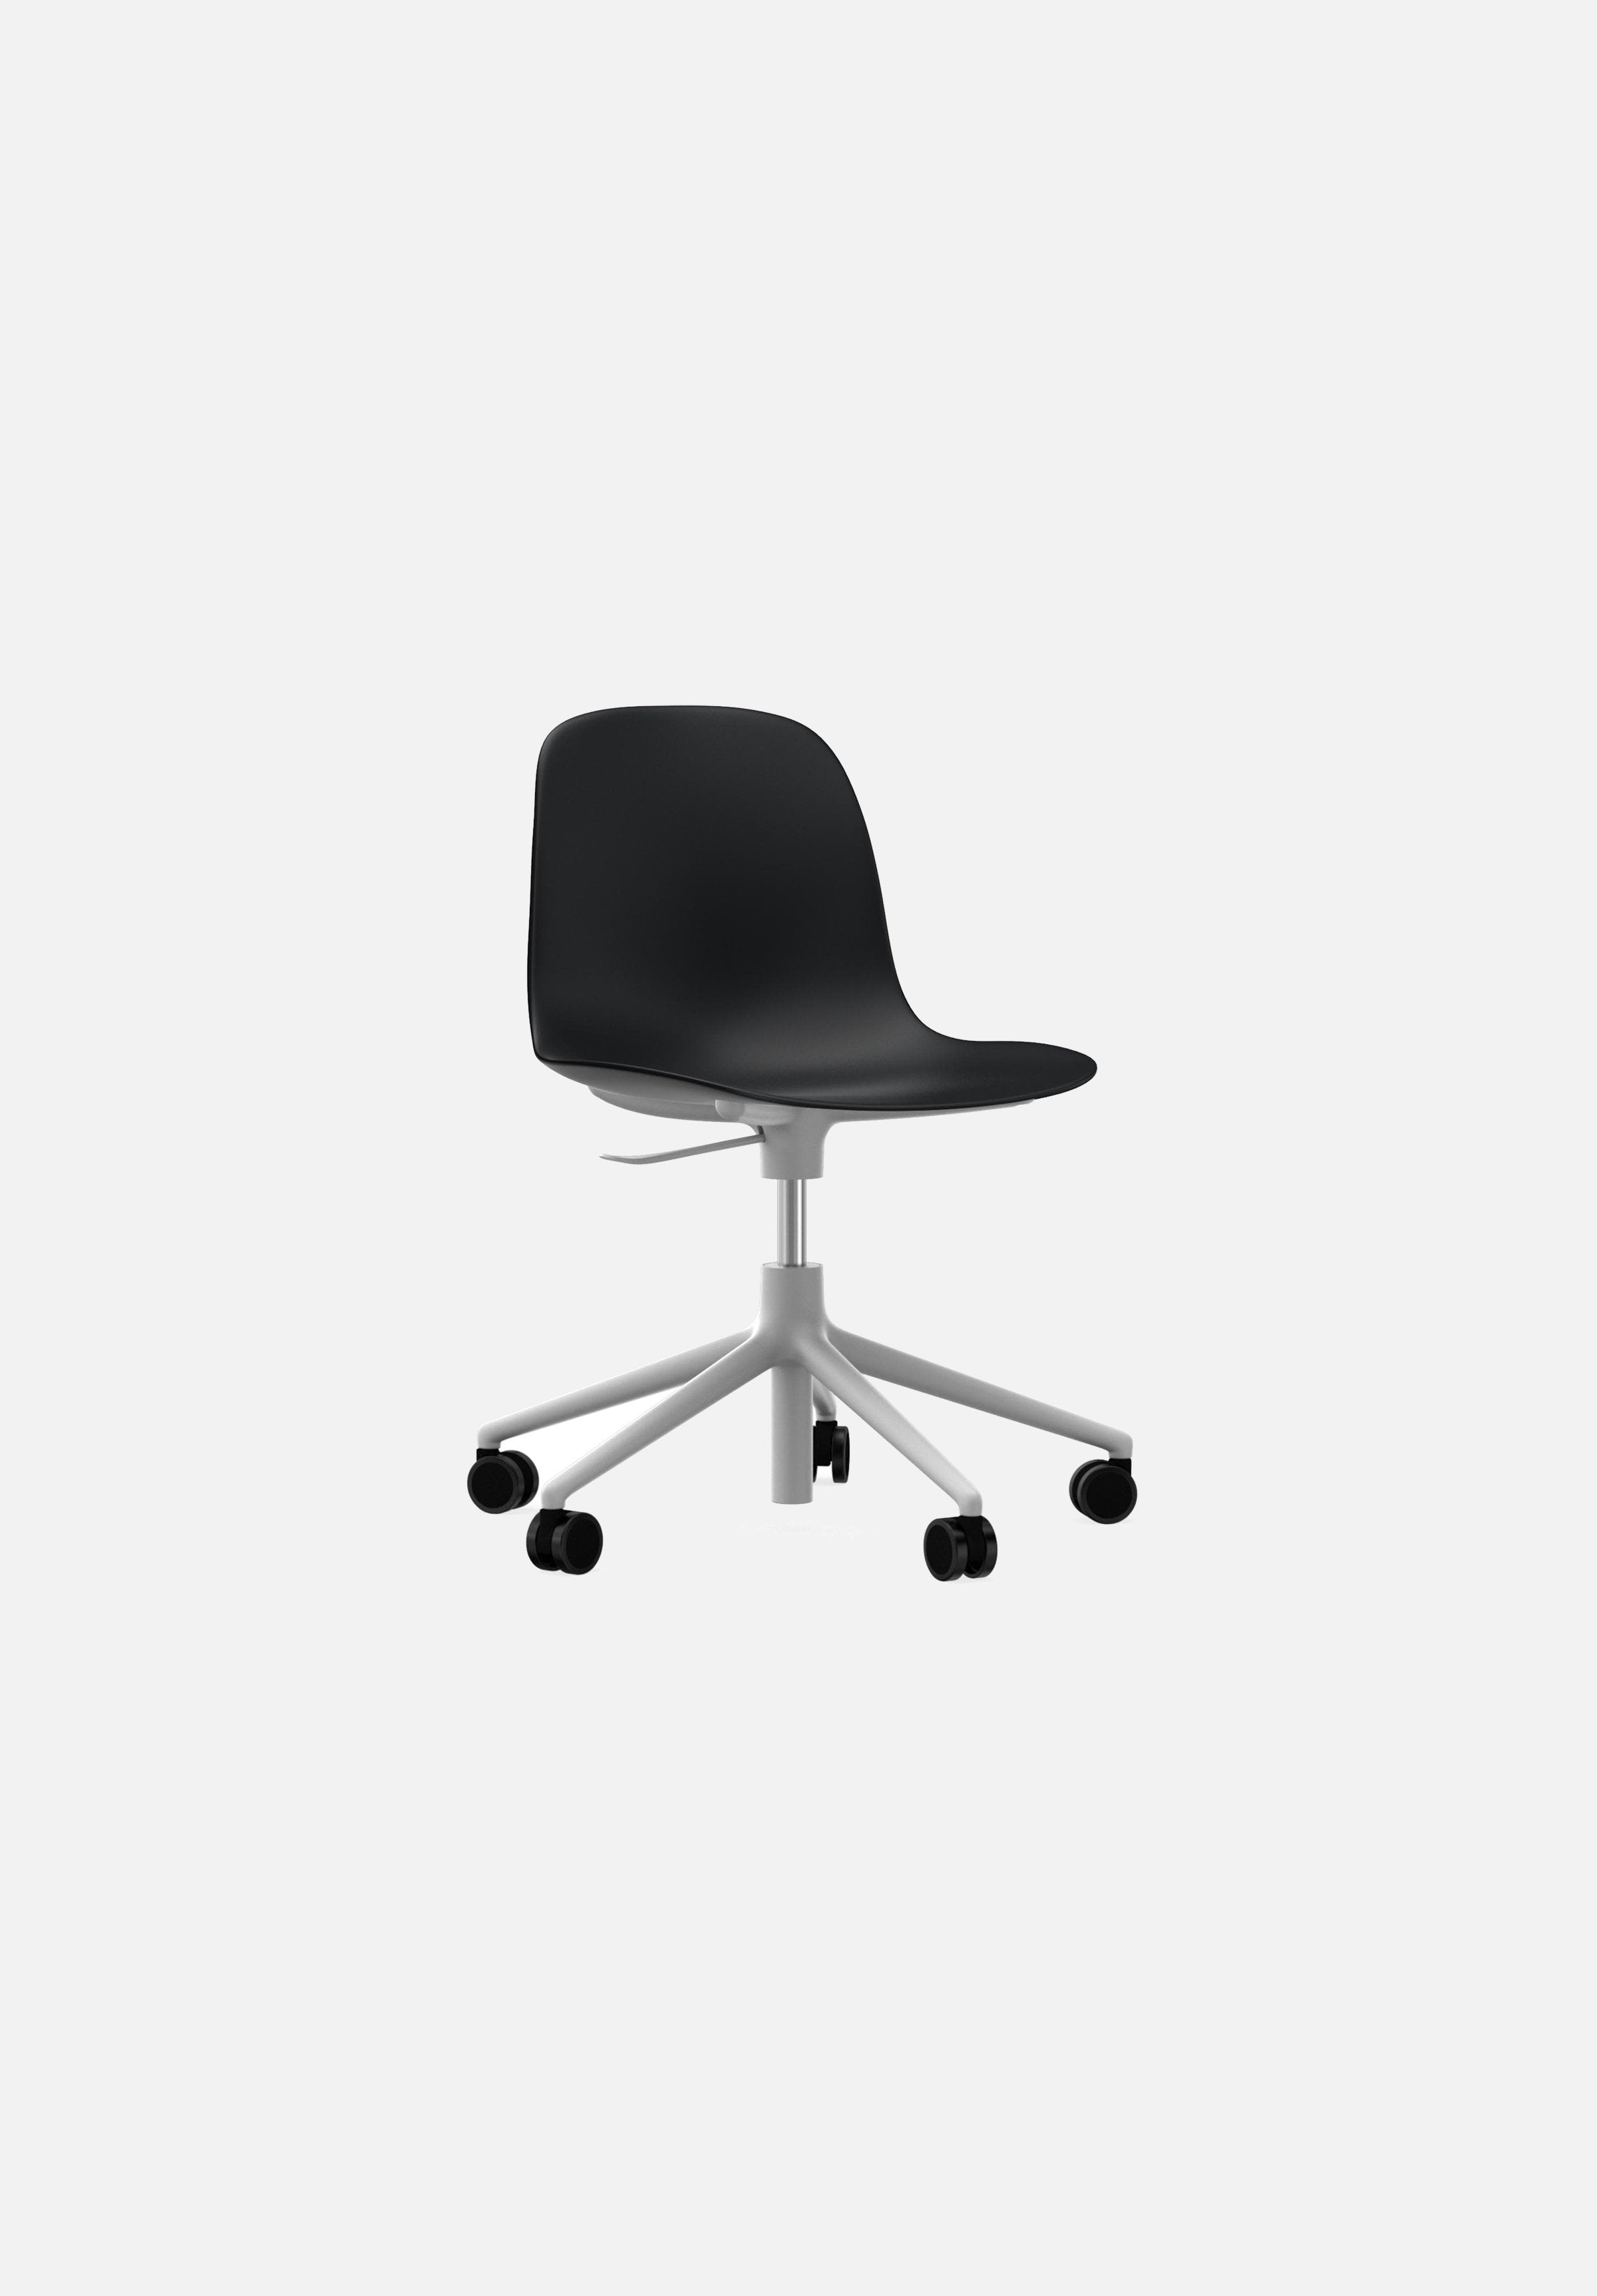 Form Chair — Swivel Gaslift-Simon Legald-Normann Copenhagen-Black-White Aluminum-Average